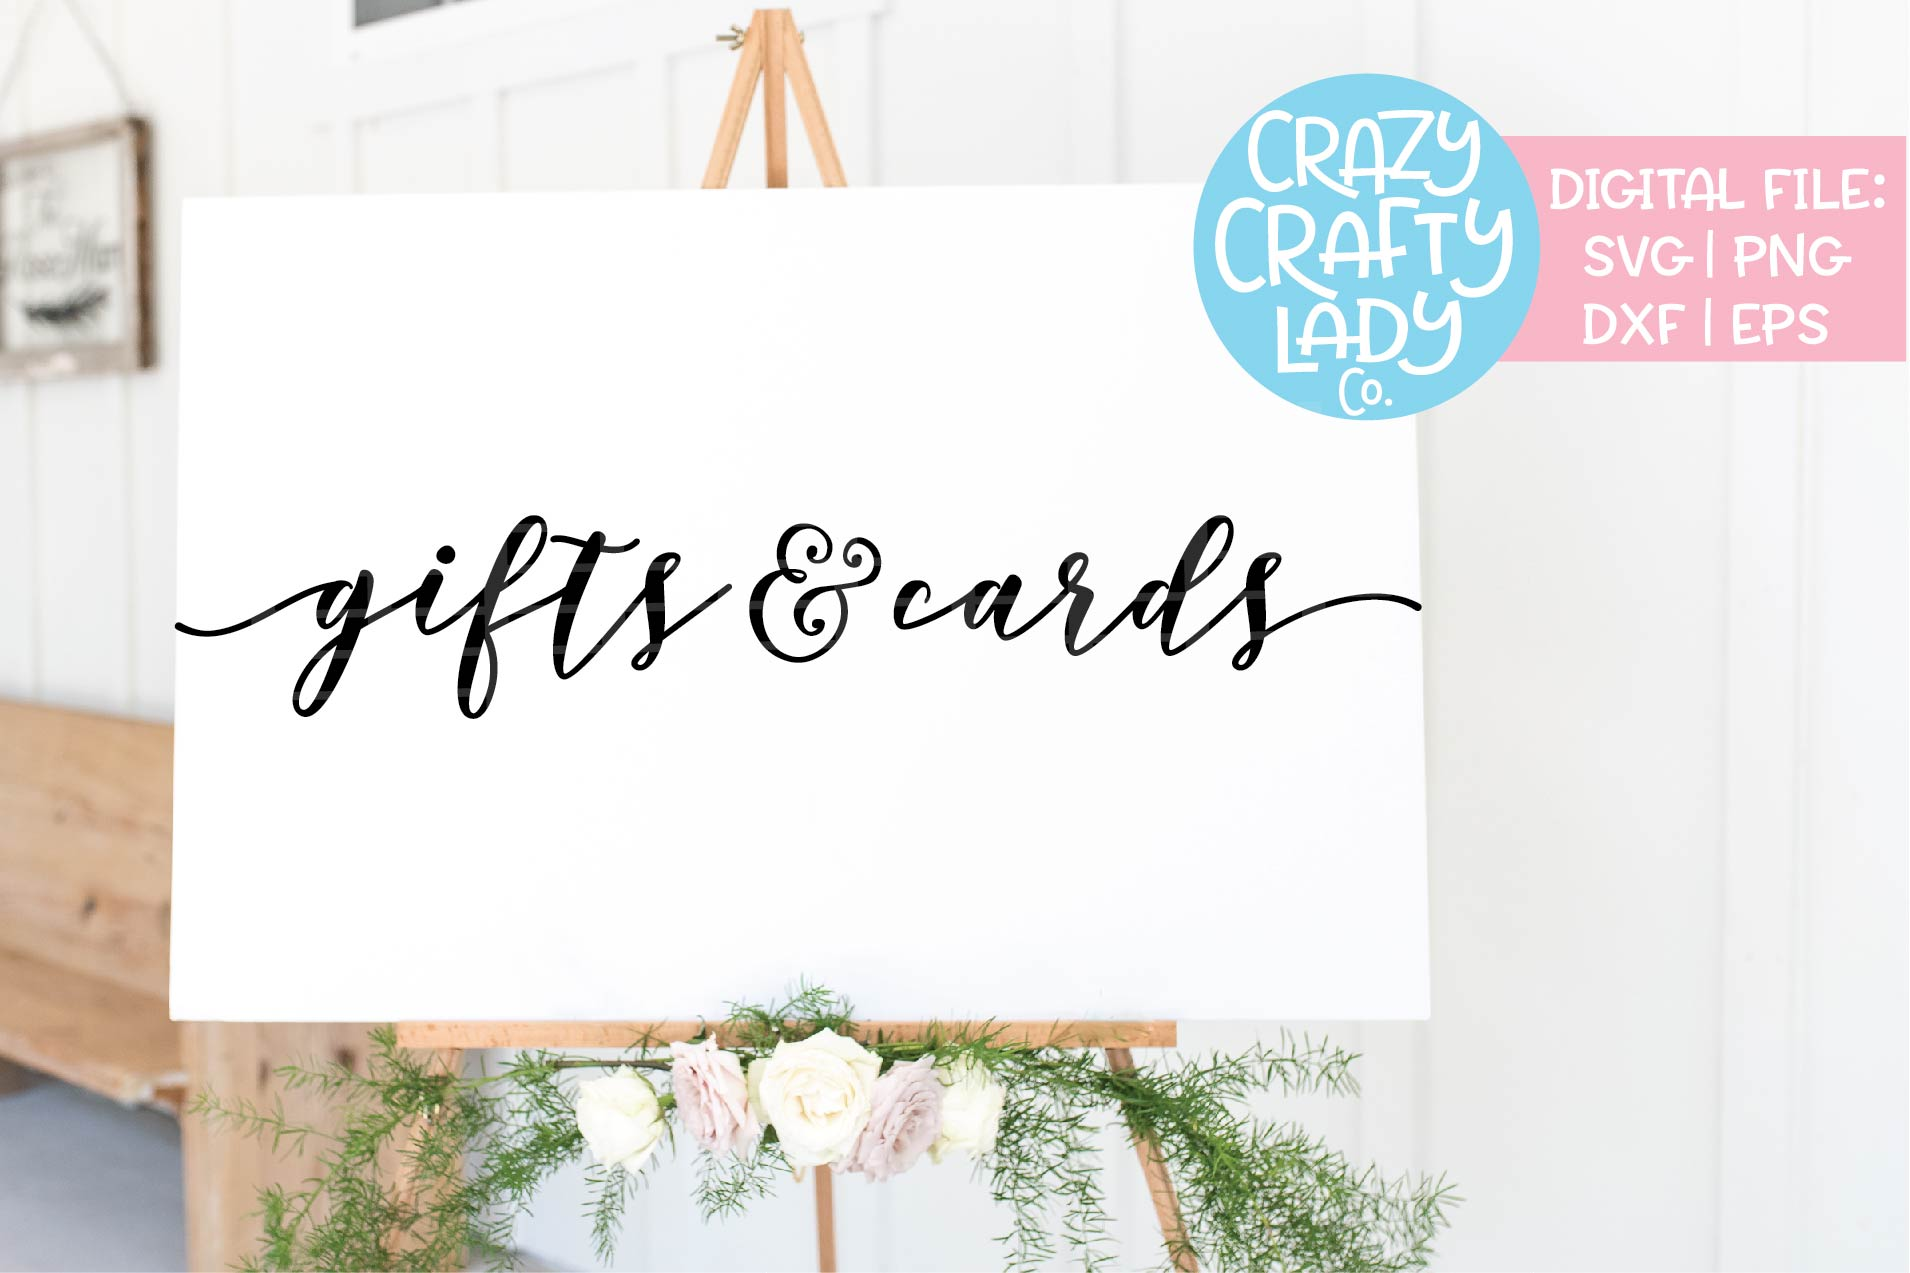 Gifts & Cards Wedding SVG DXF EPS PNG Cut File example image 1